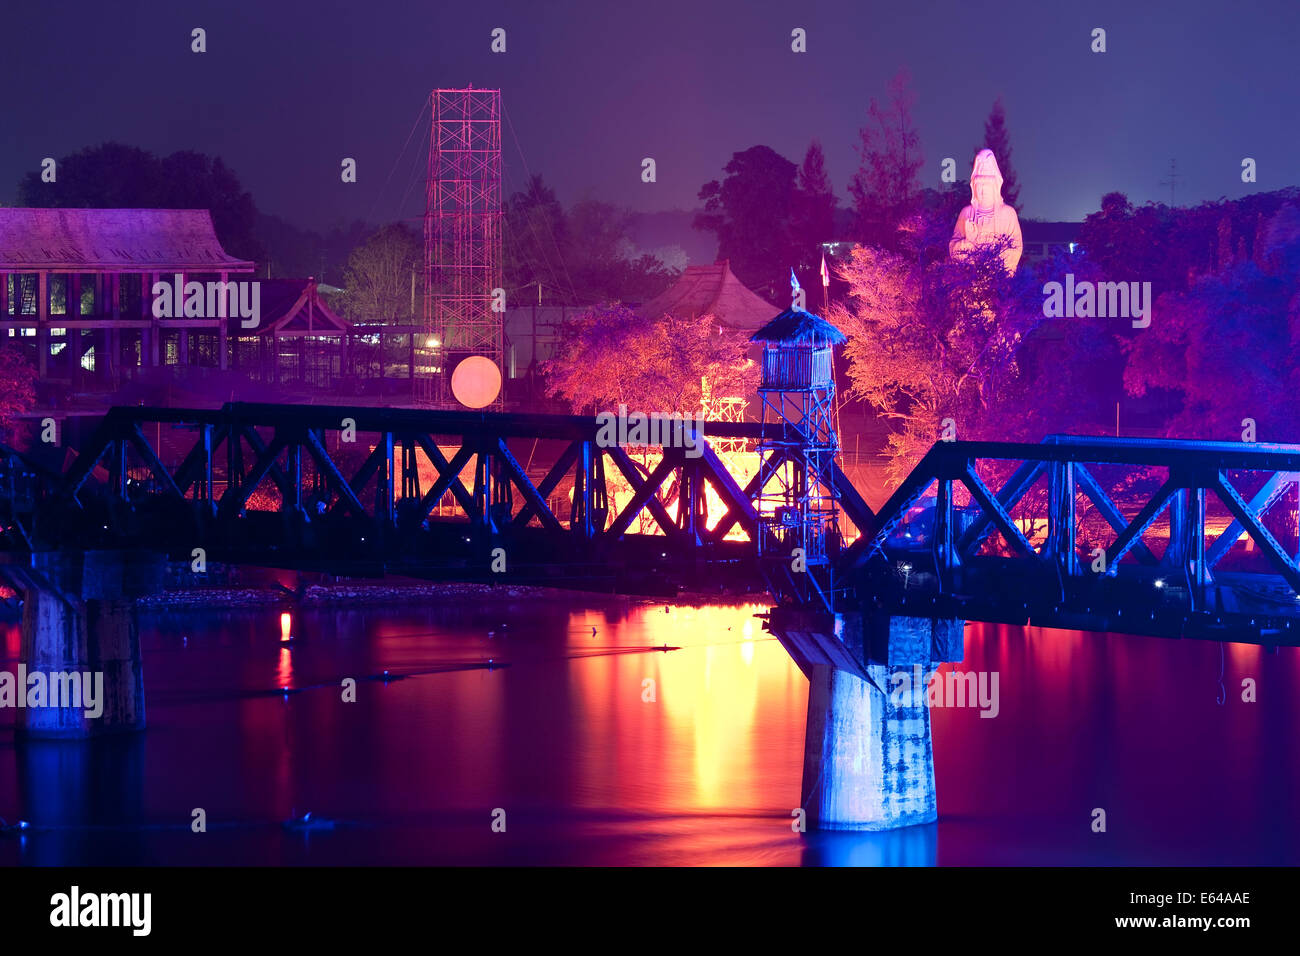 Light And Sound Show, Bridge Over River Kwai, Kanchanaburi, Thailand    Stock Image